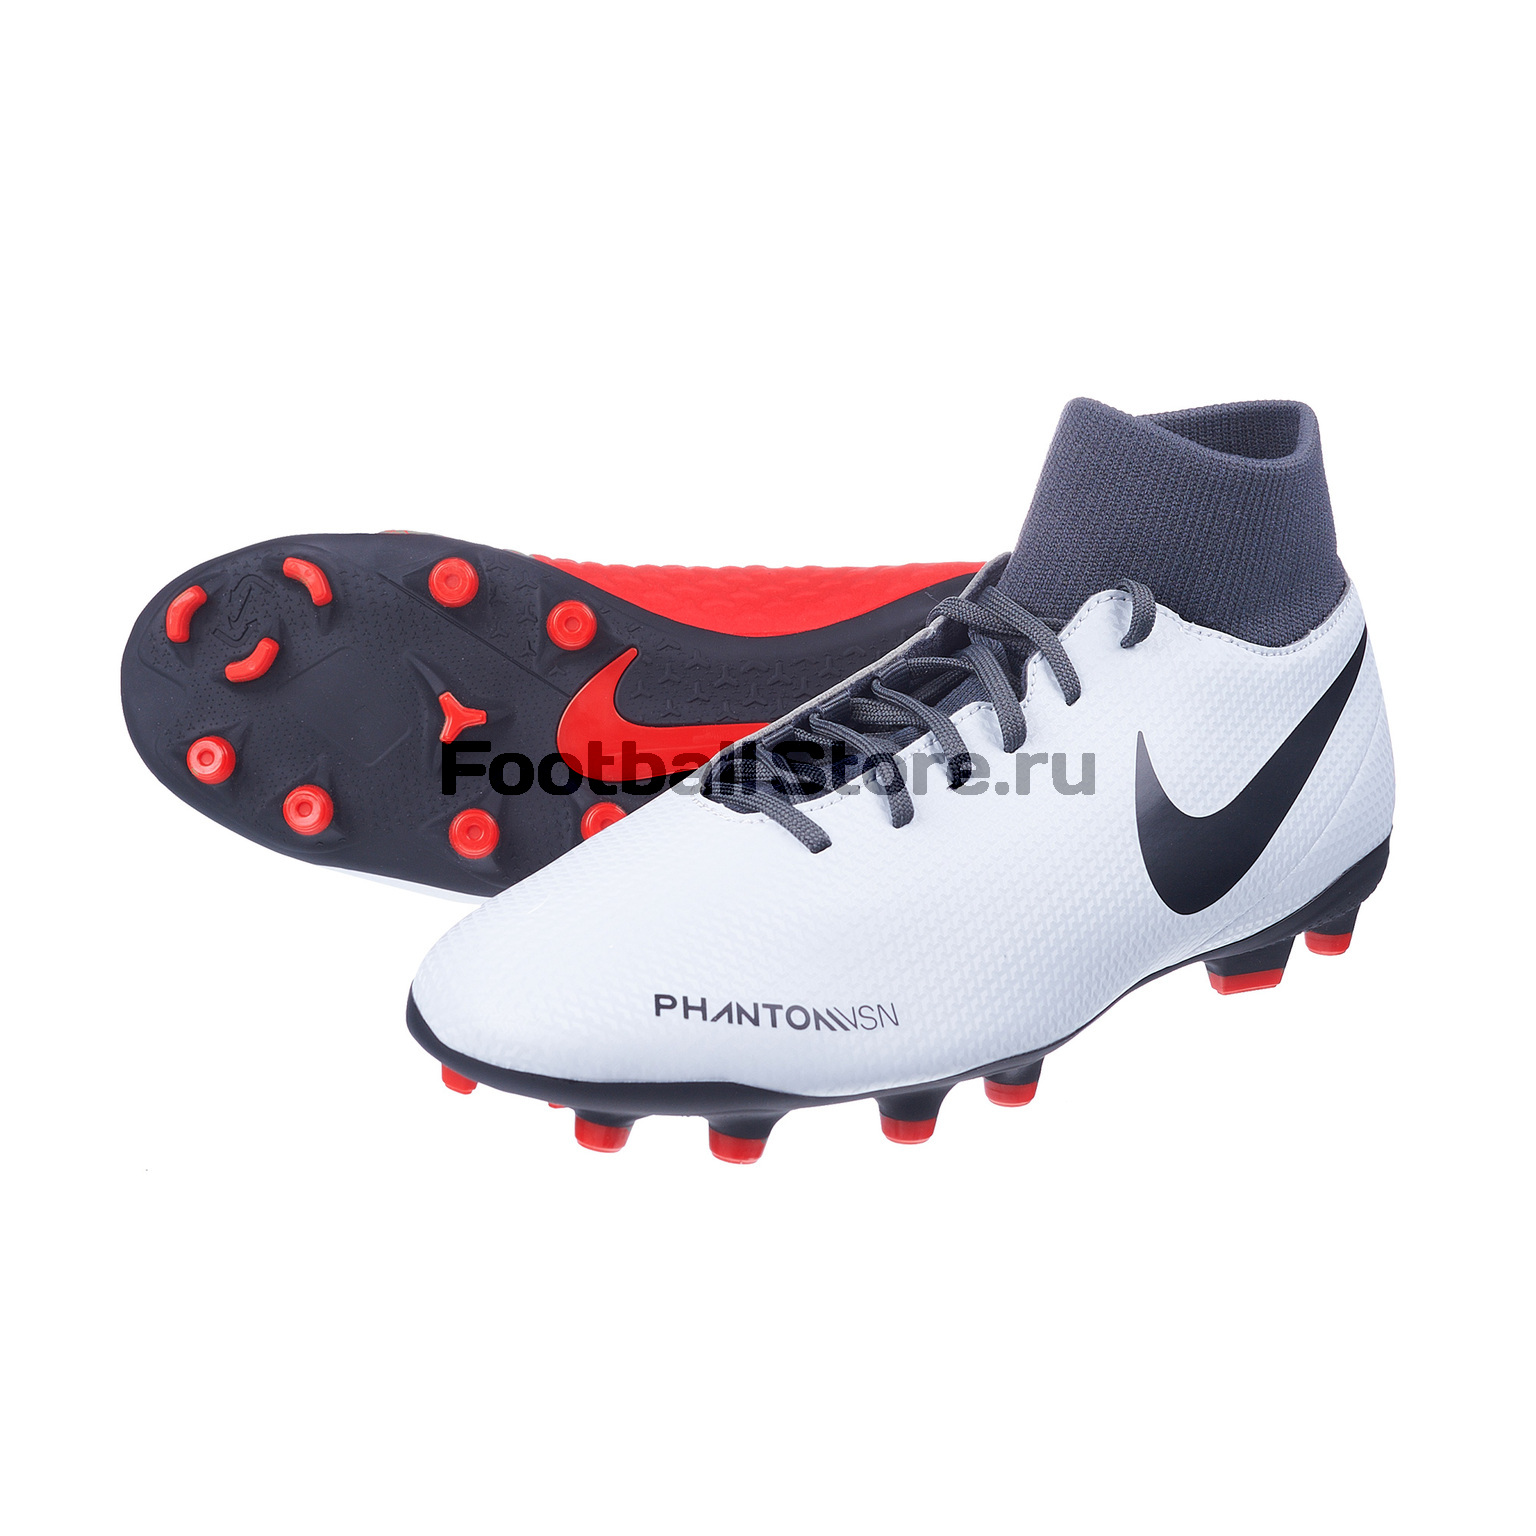 Бутсы Nike Phantom Vision Club DF FG/MG AJ6959-060 бутсы nike vapor 12 club fg mg ah7378 810